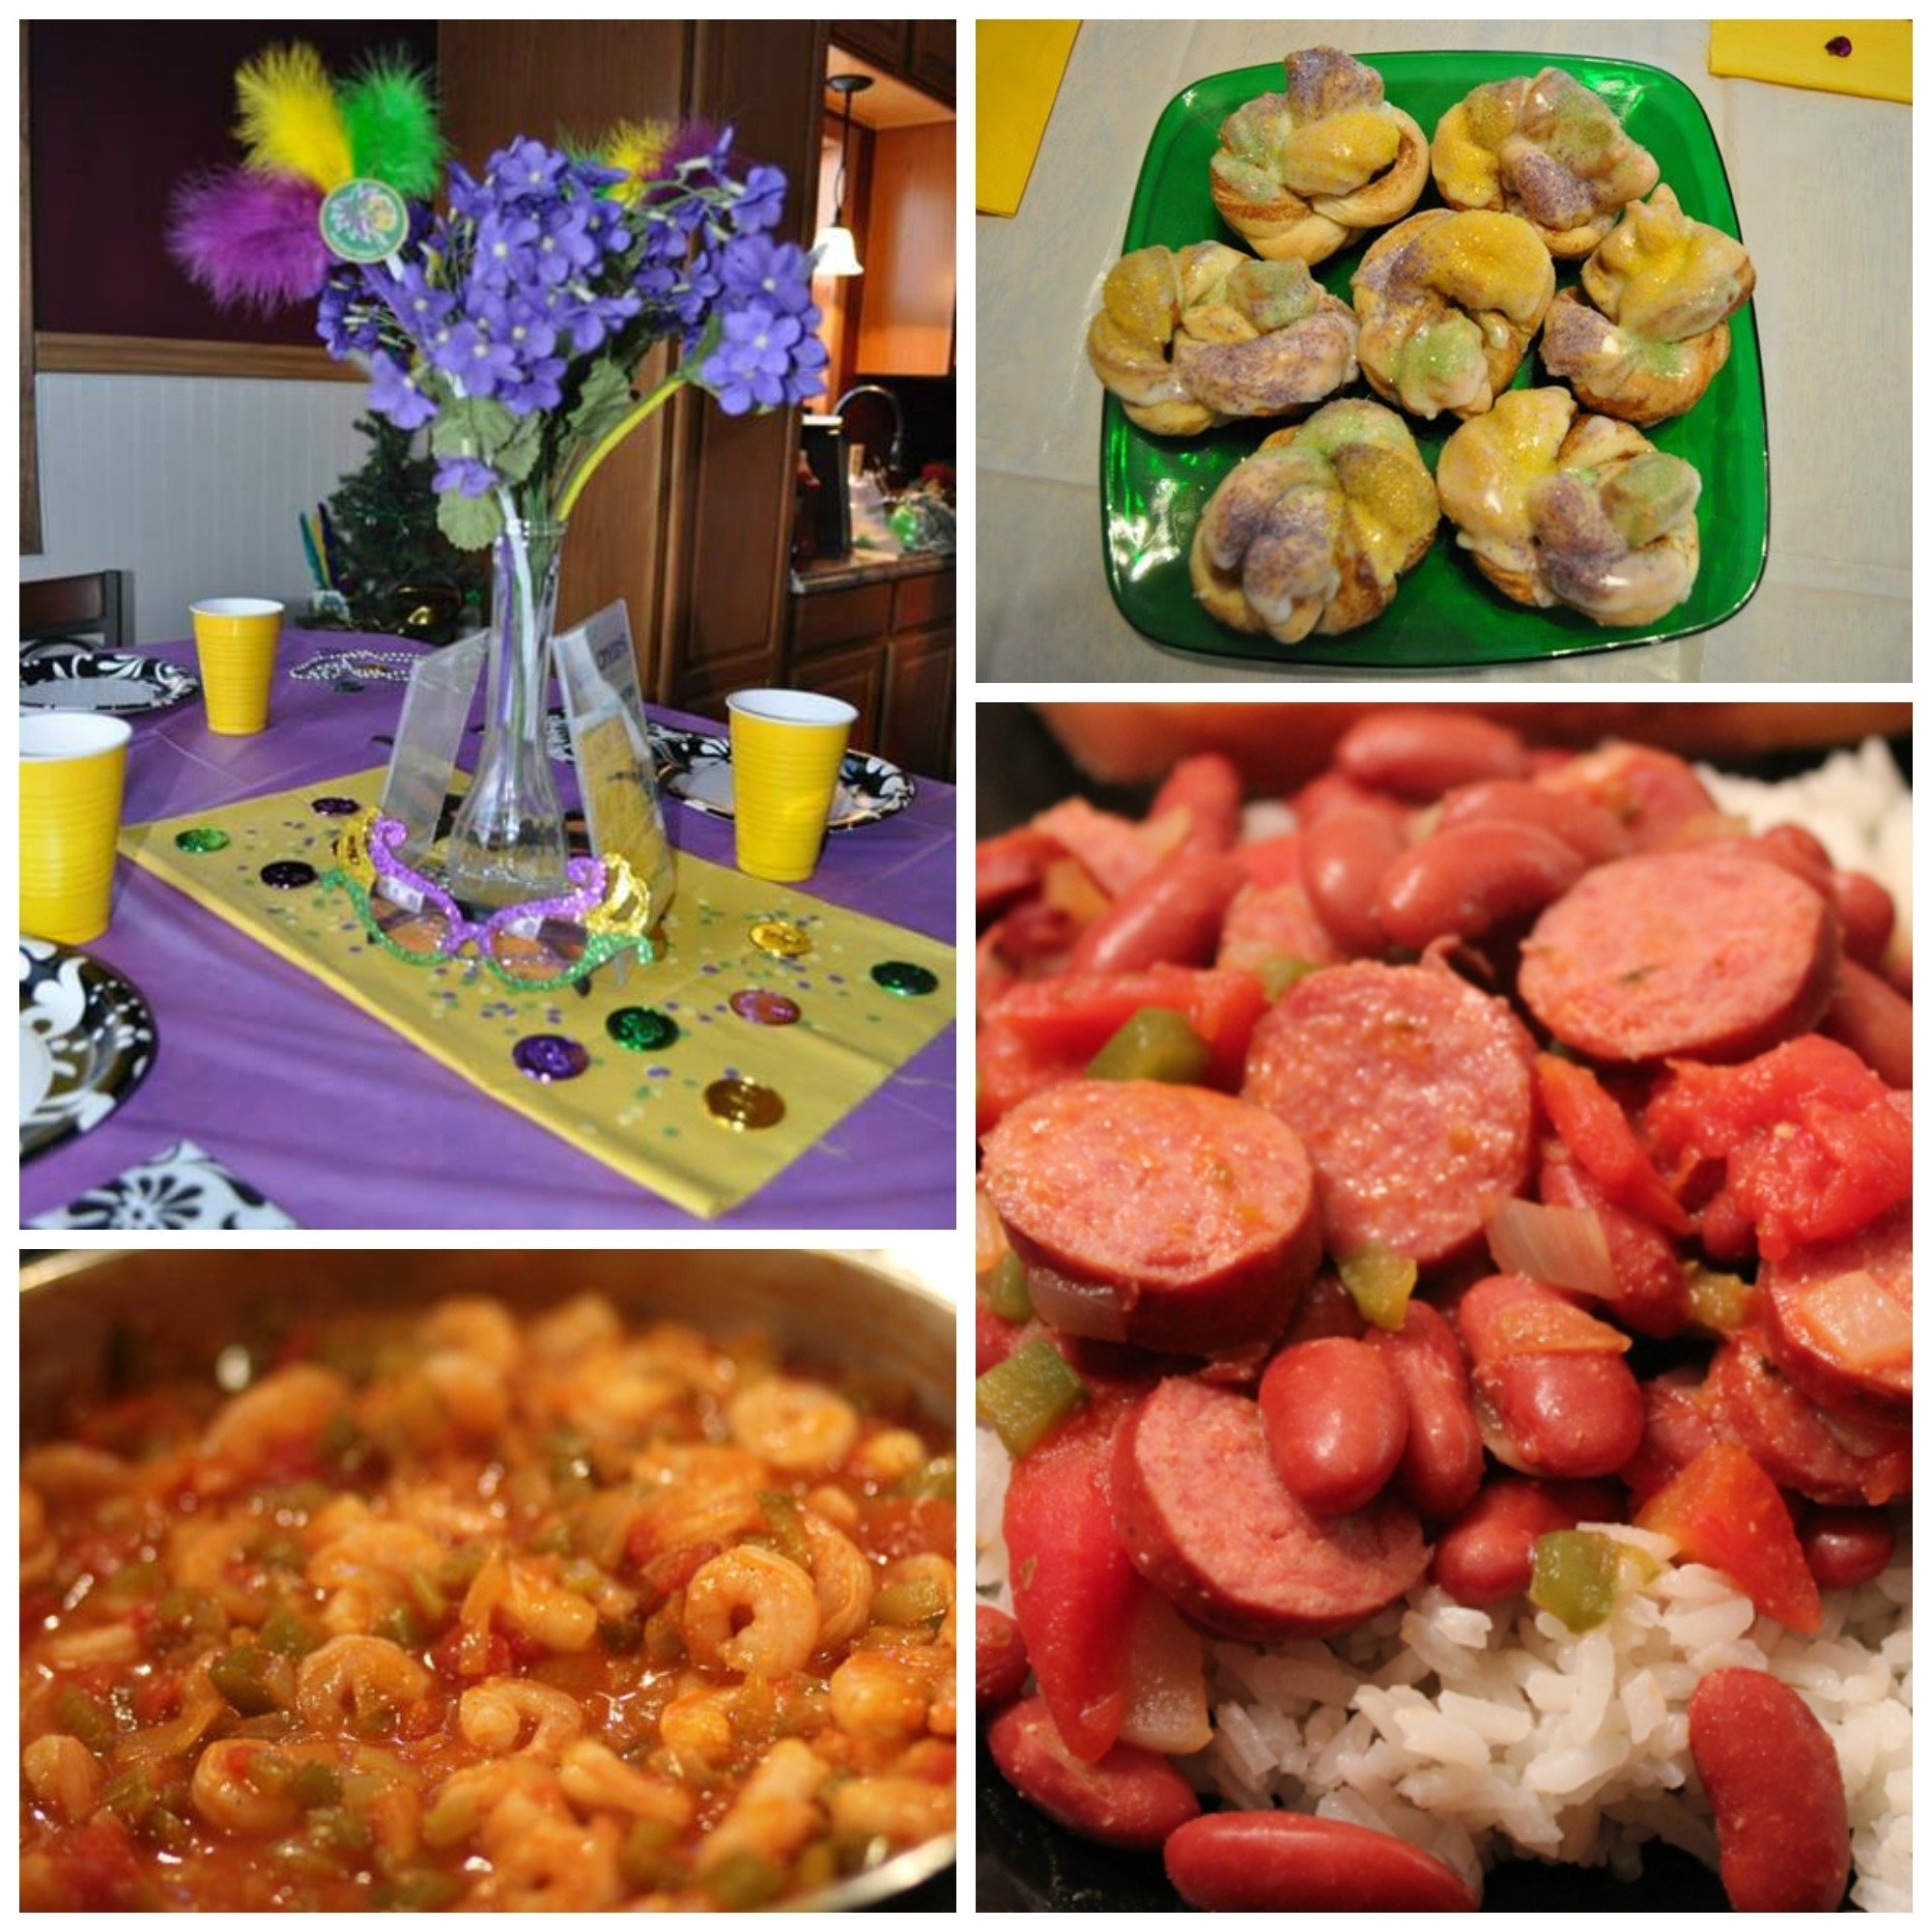 mardi gras party ideas and recipes | mommysavers